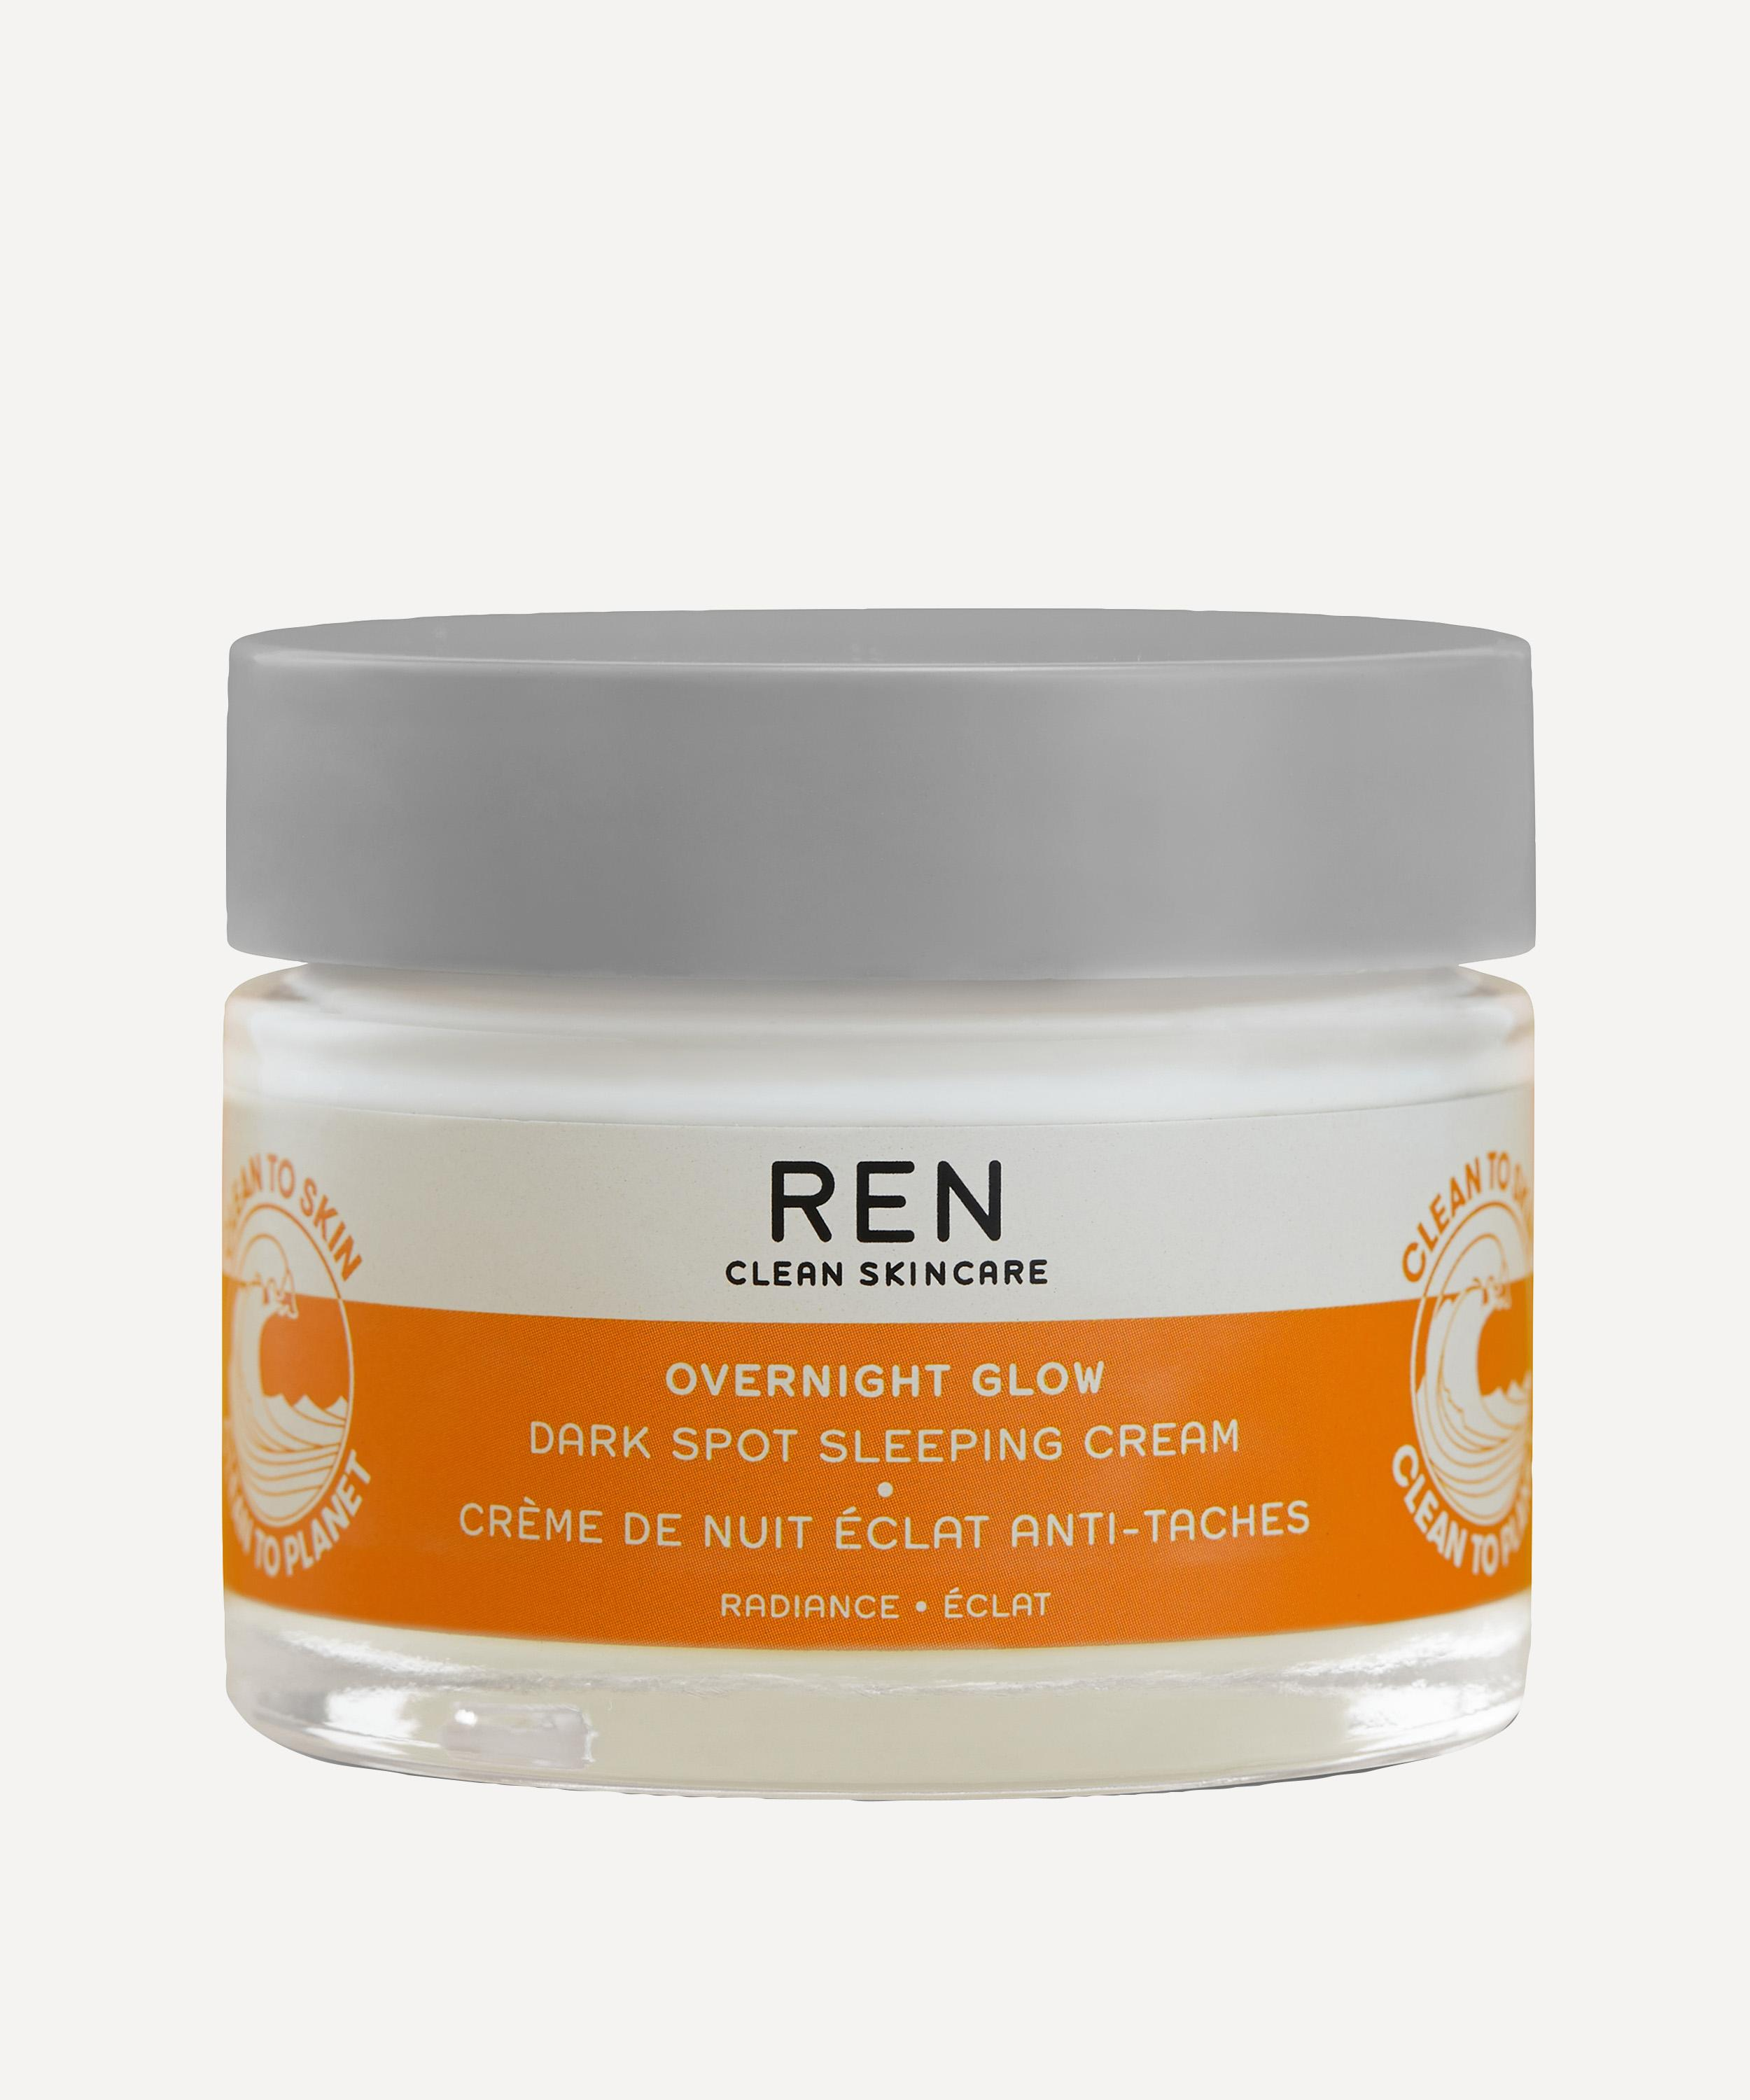 Ren Clean Skincare Liberty Usa